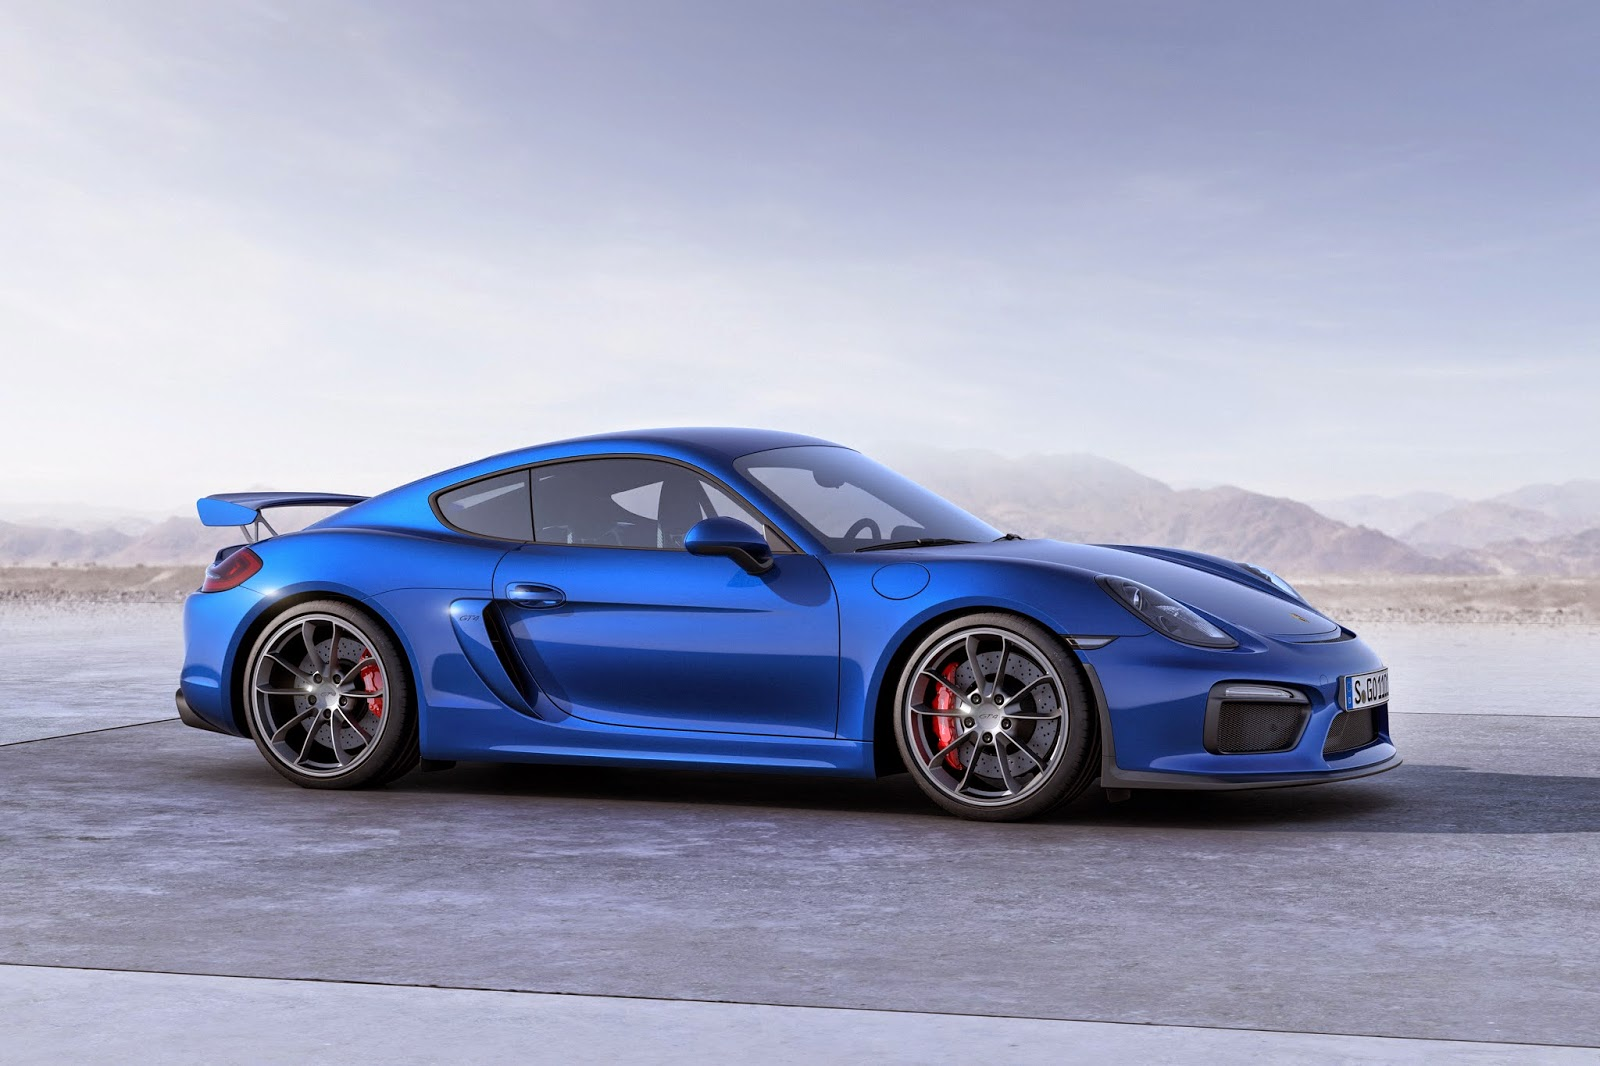 New Porsche Cayman GT4 Vs. Used '997' 911 GT3 [w/Poll